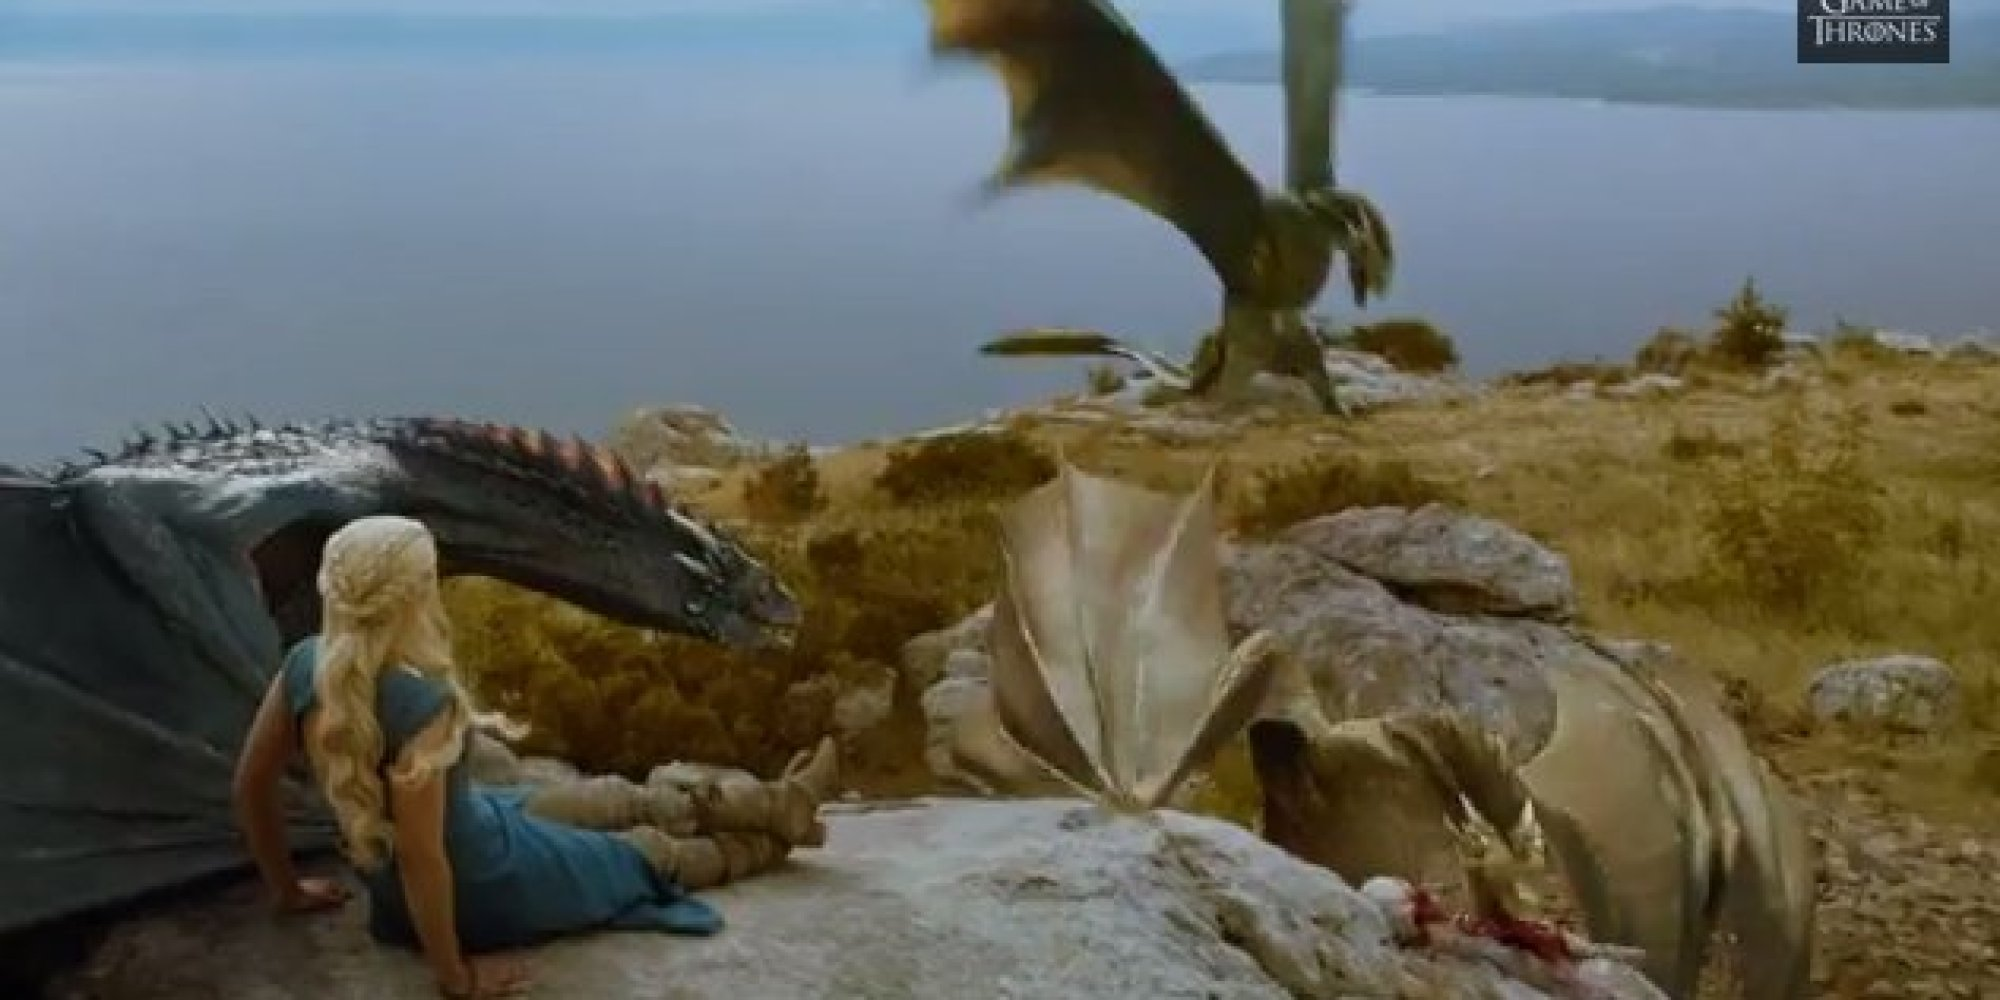 HBO Releases New 'Game Of Thrones' Season 4 Trailer With More Action And More Dragons ...